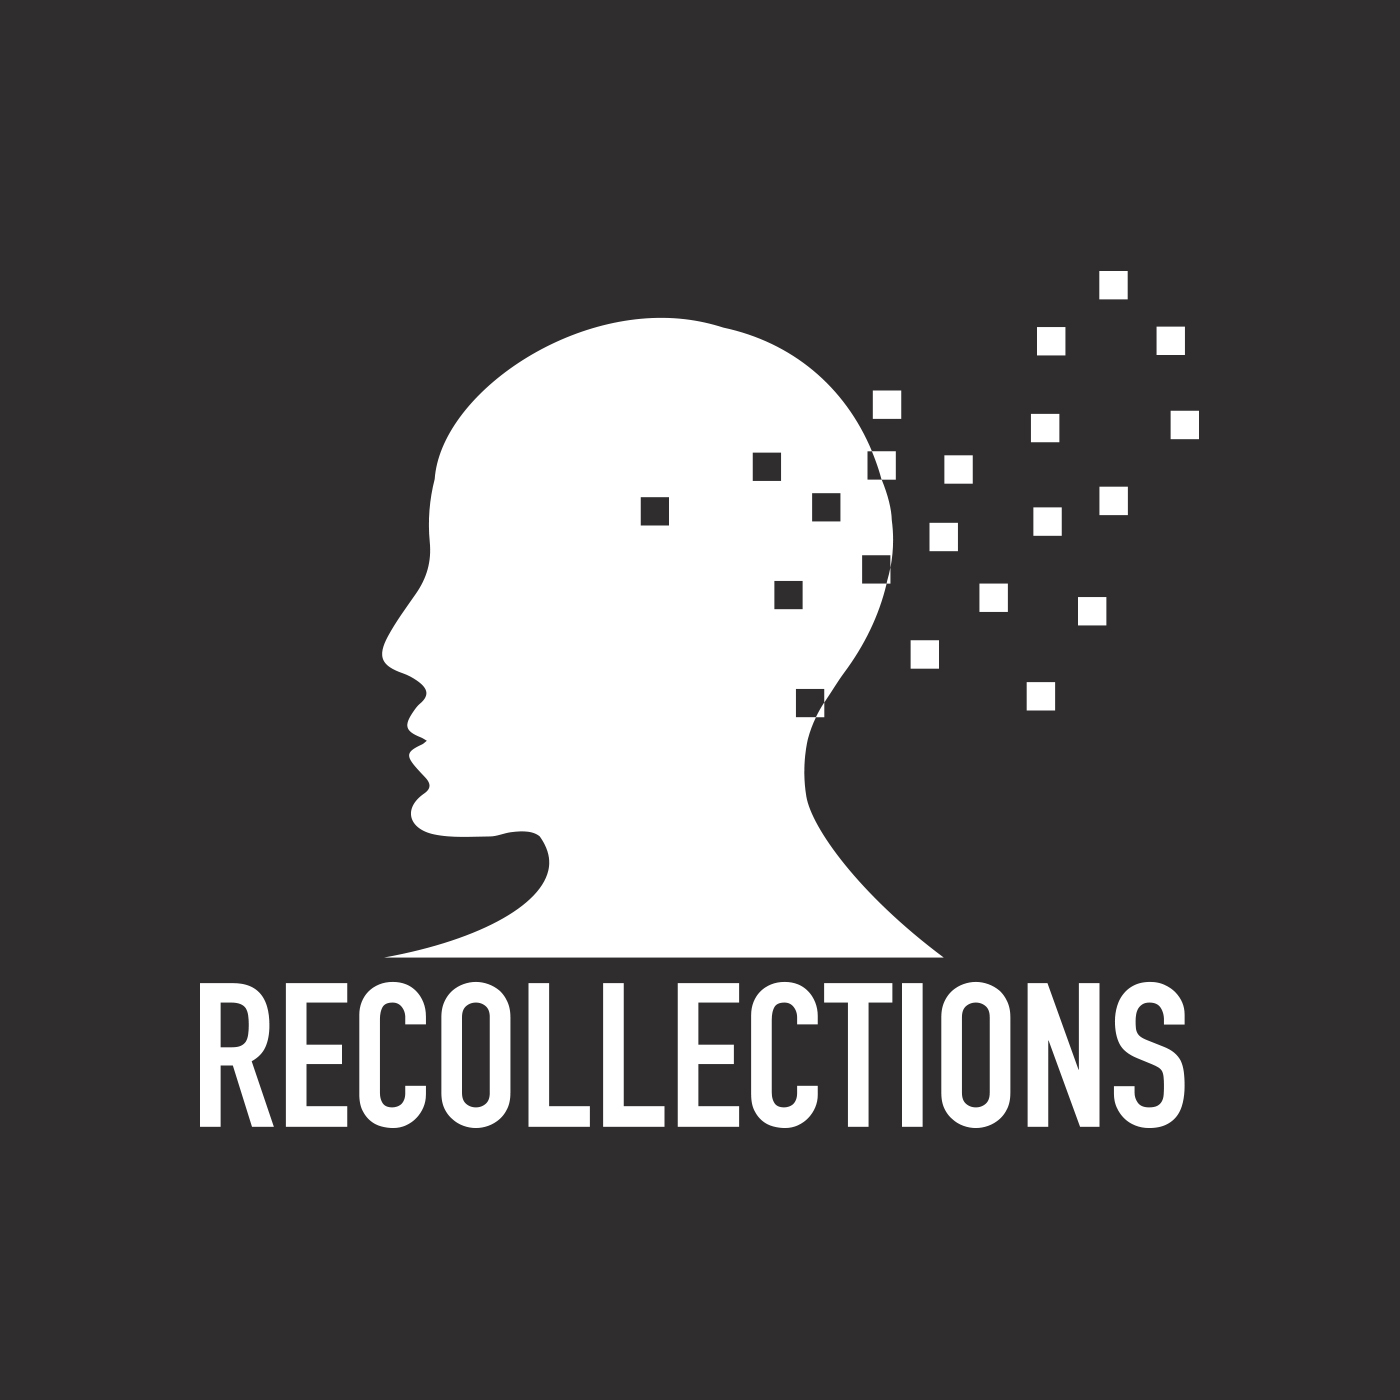 Recollections show image